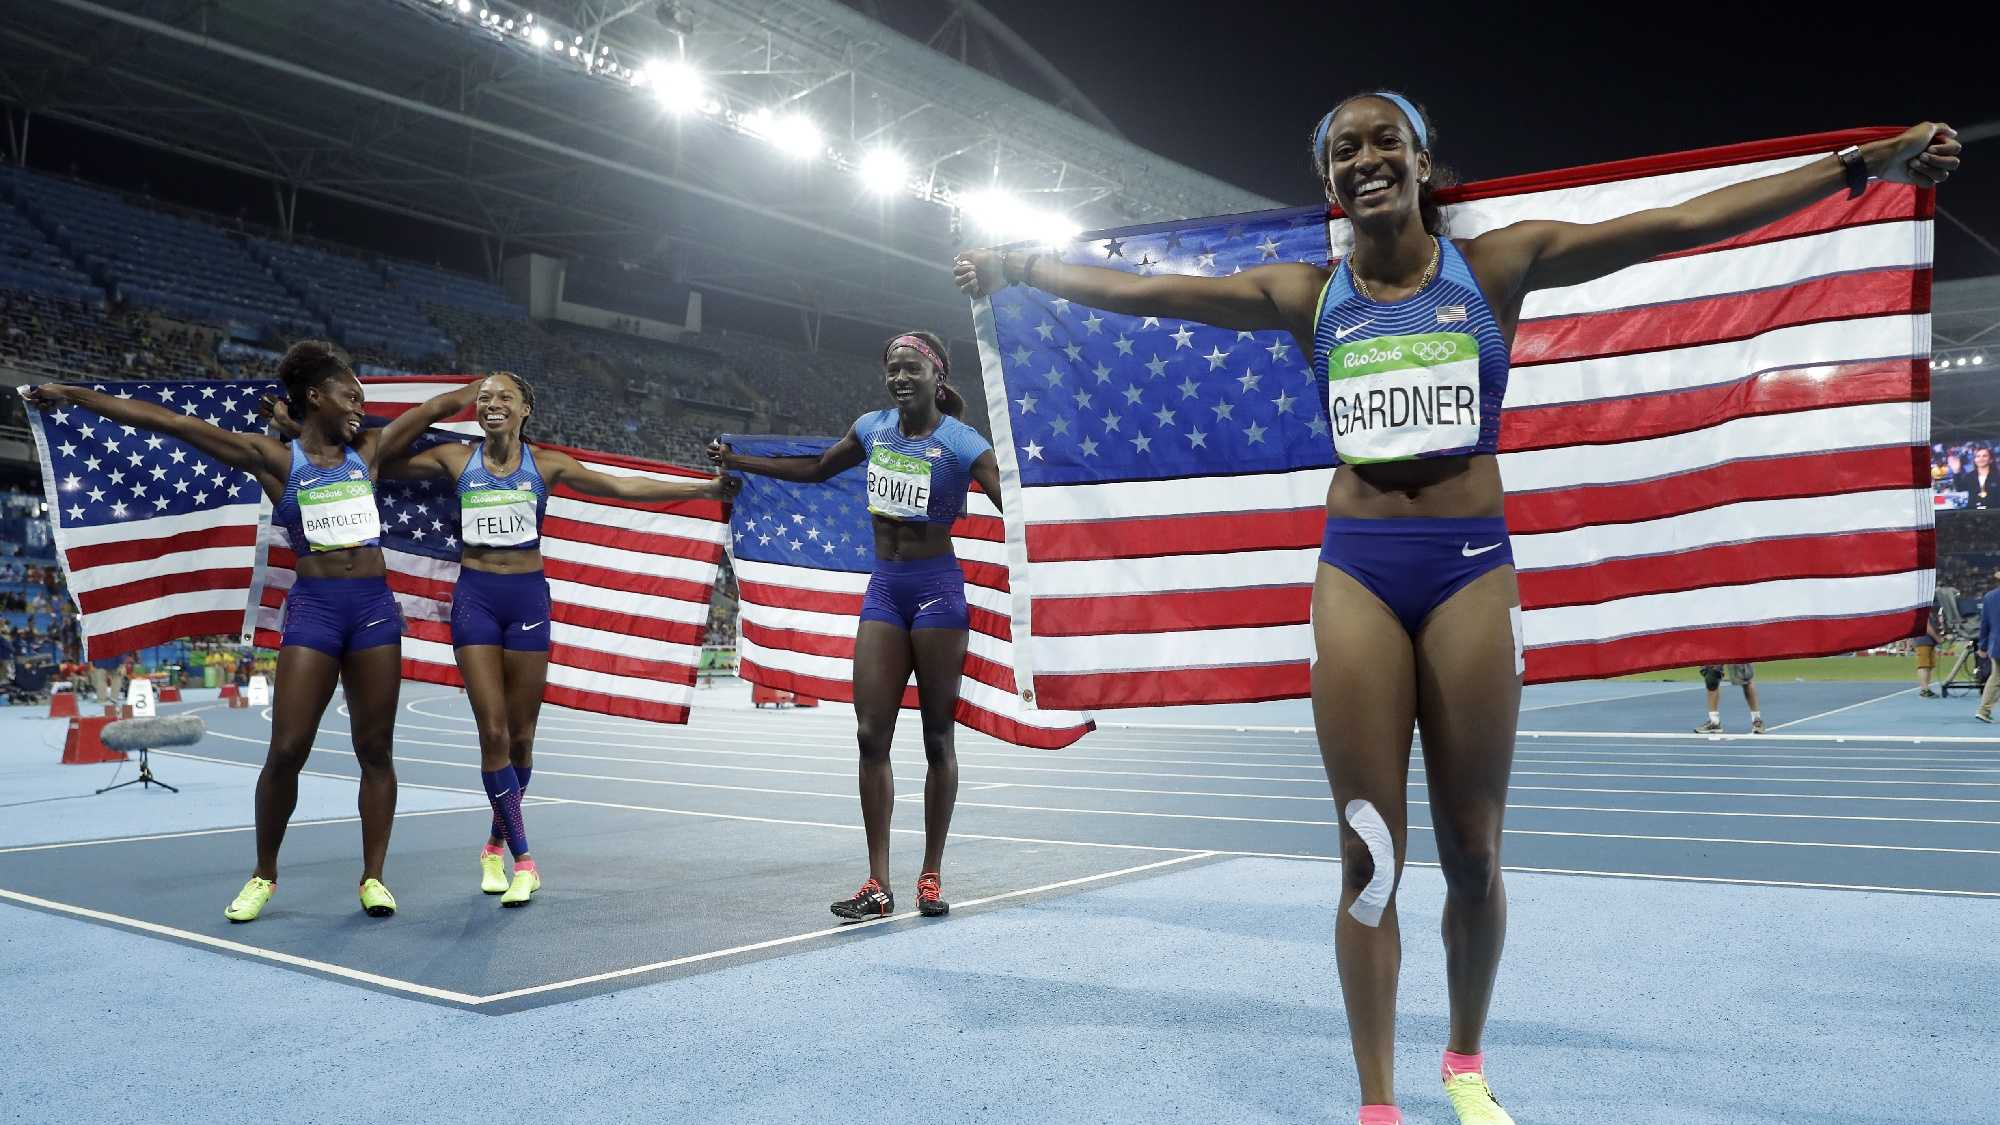 United States's Tianna Bartoletta, Allyson Felix, English Gardner and Tori Bowie celebrate winning the women's 4 x 100-meter relay final during the athletics competitions of the 2016 Summer Olympics at the Olympic stadium in Rio de Janeiro.